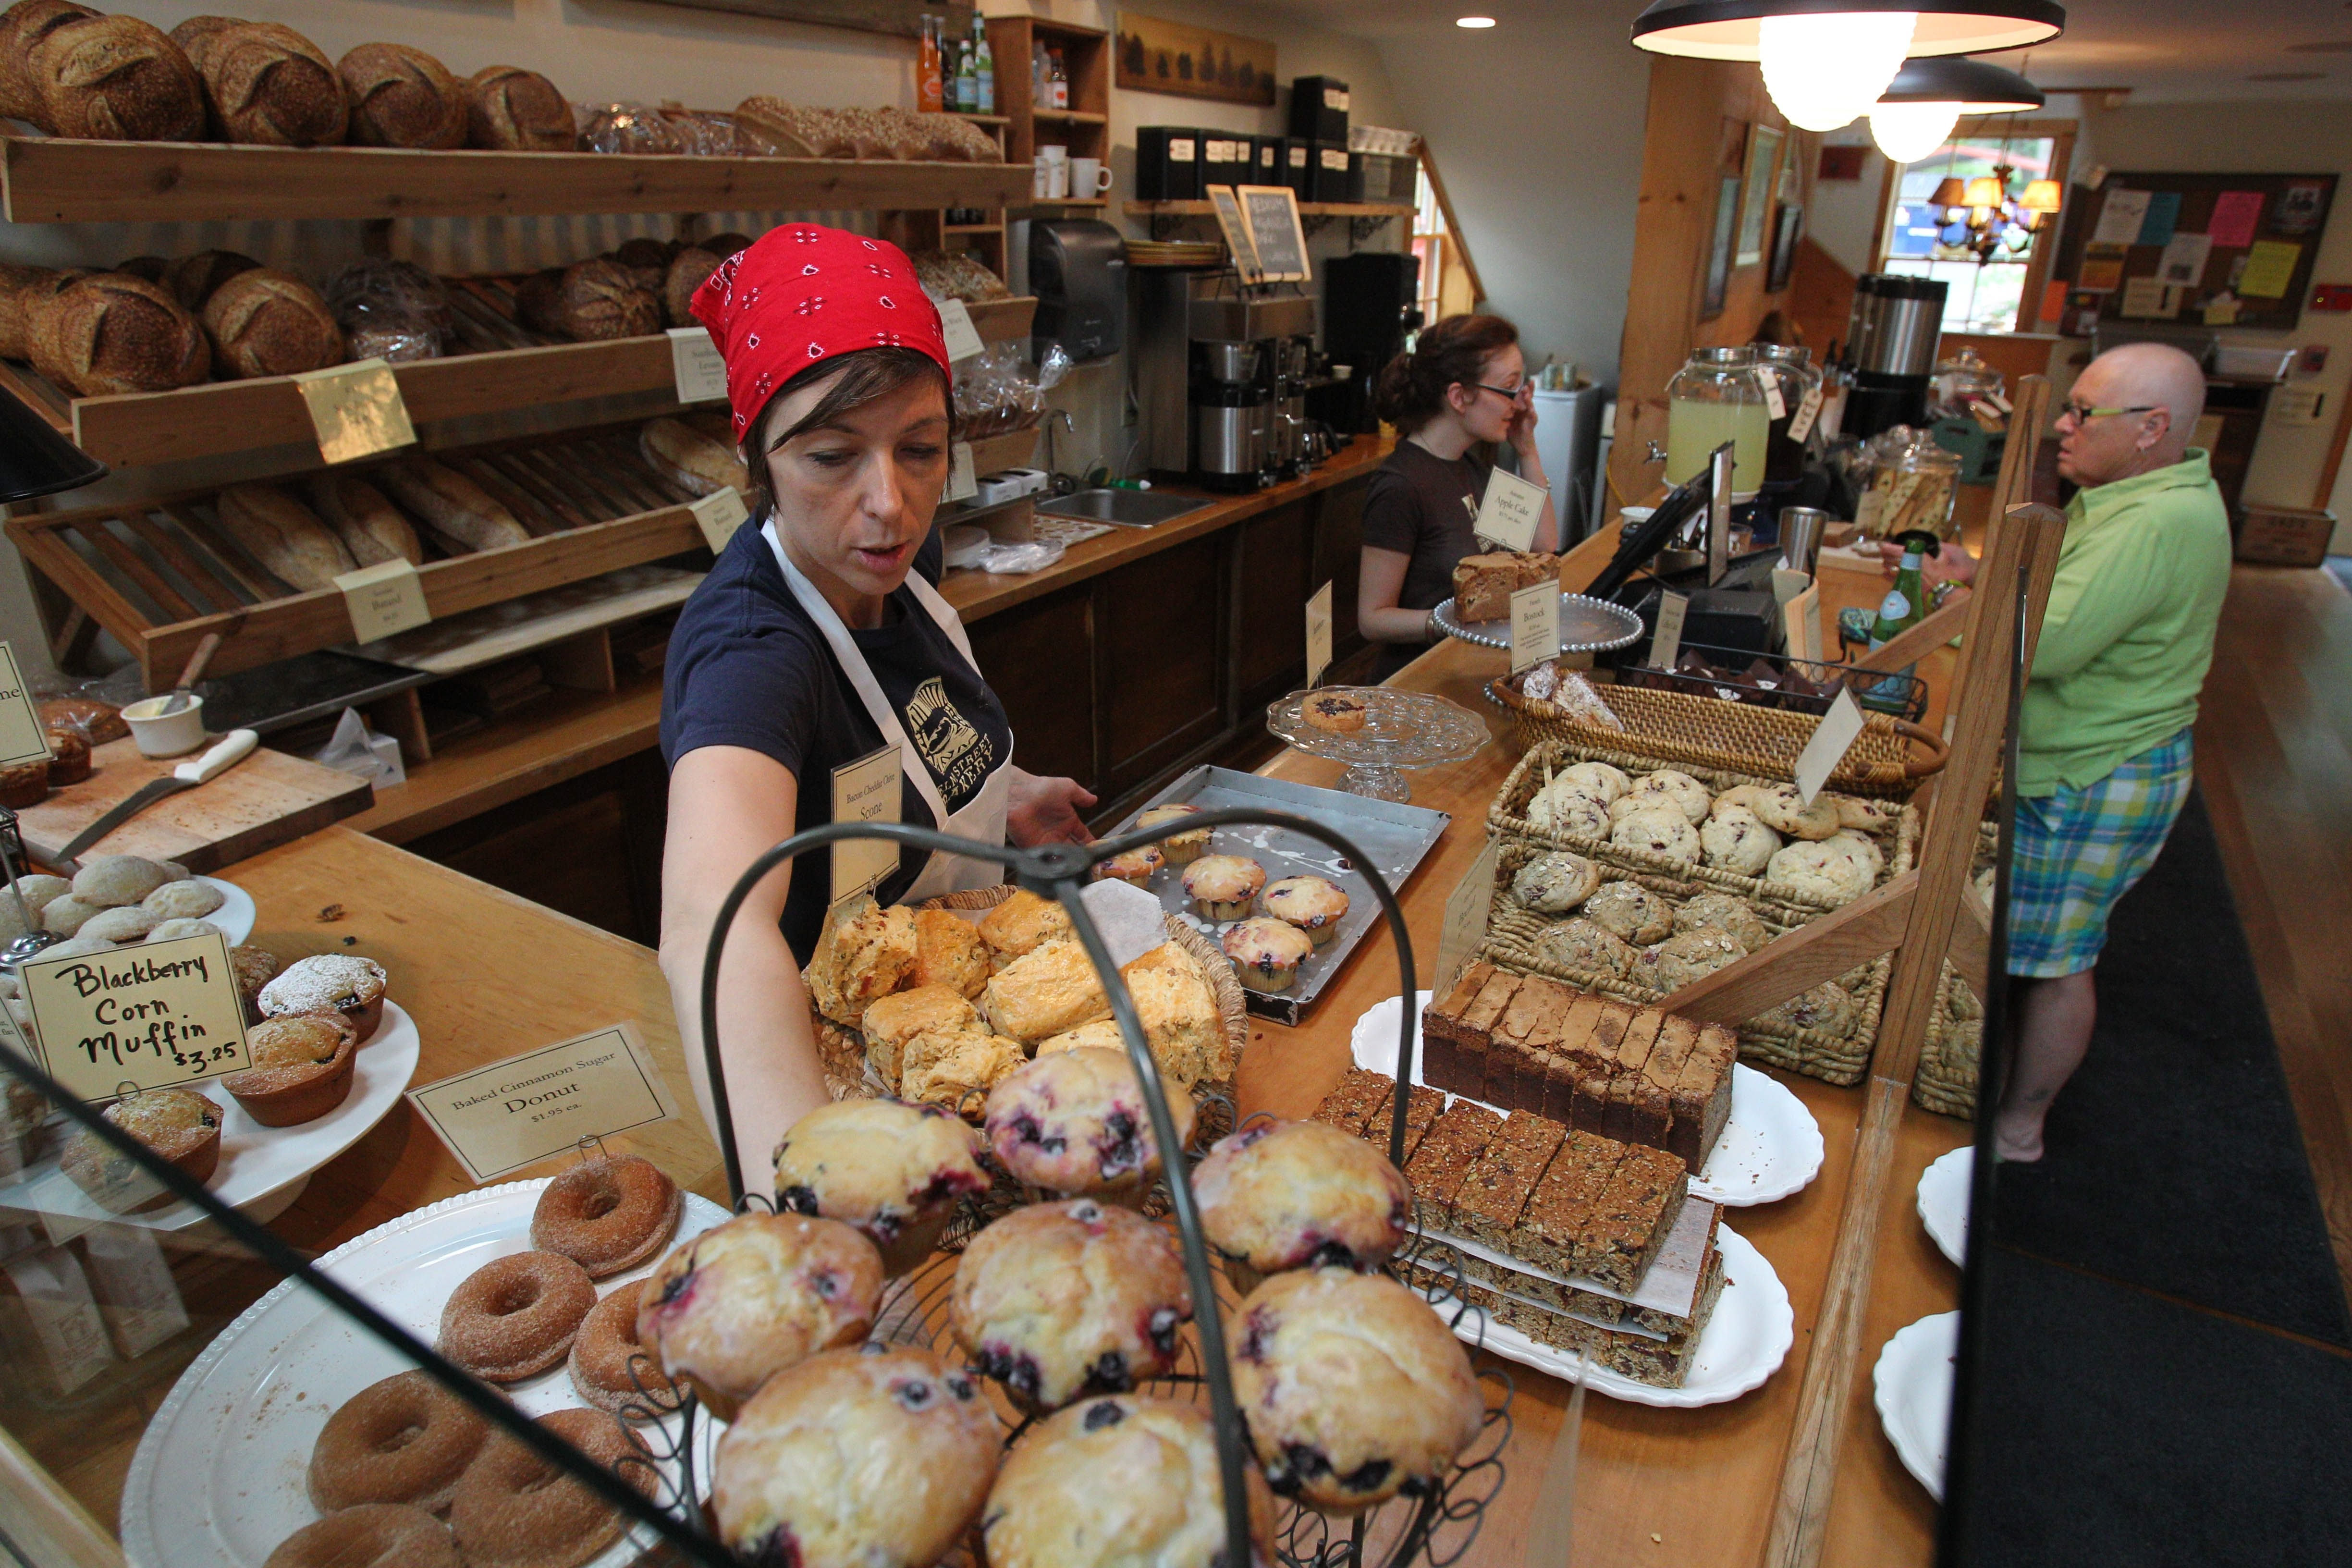 Elm Street in East Aurora is experiencing a renaissance, with the Elm Street Bakery being the anchor.  Luci Levere staffs the pastry, bread and coffee counter in this photo.